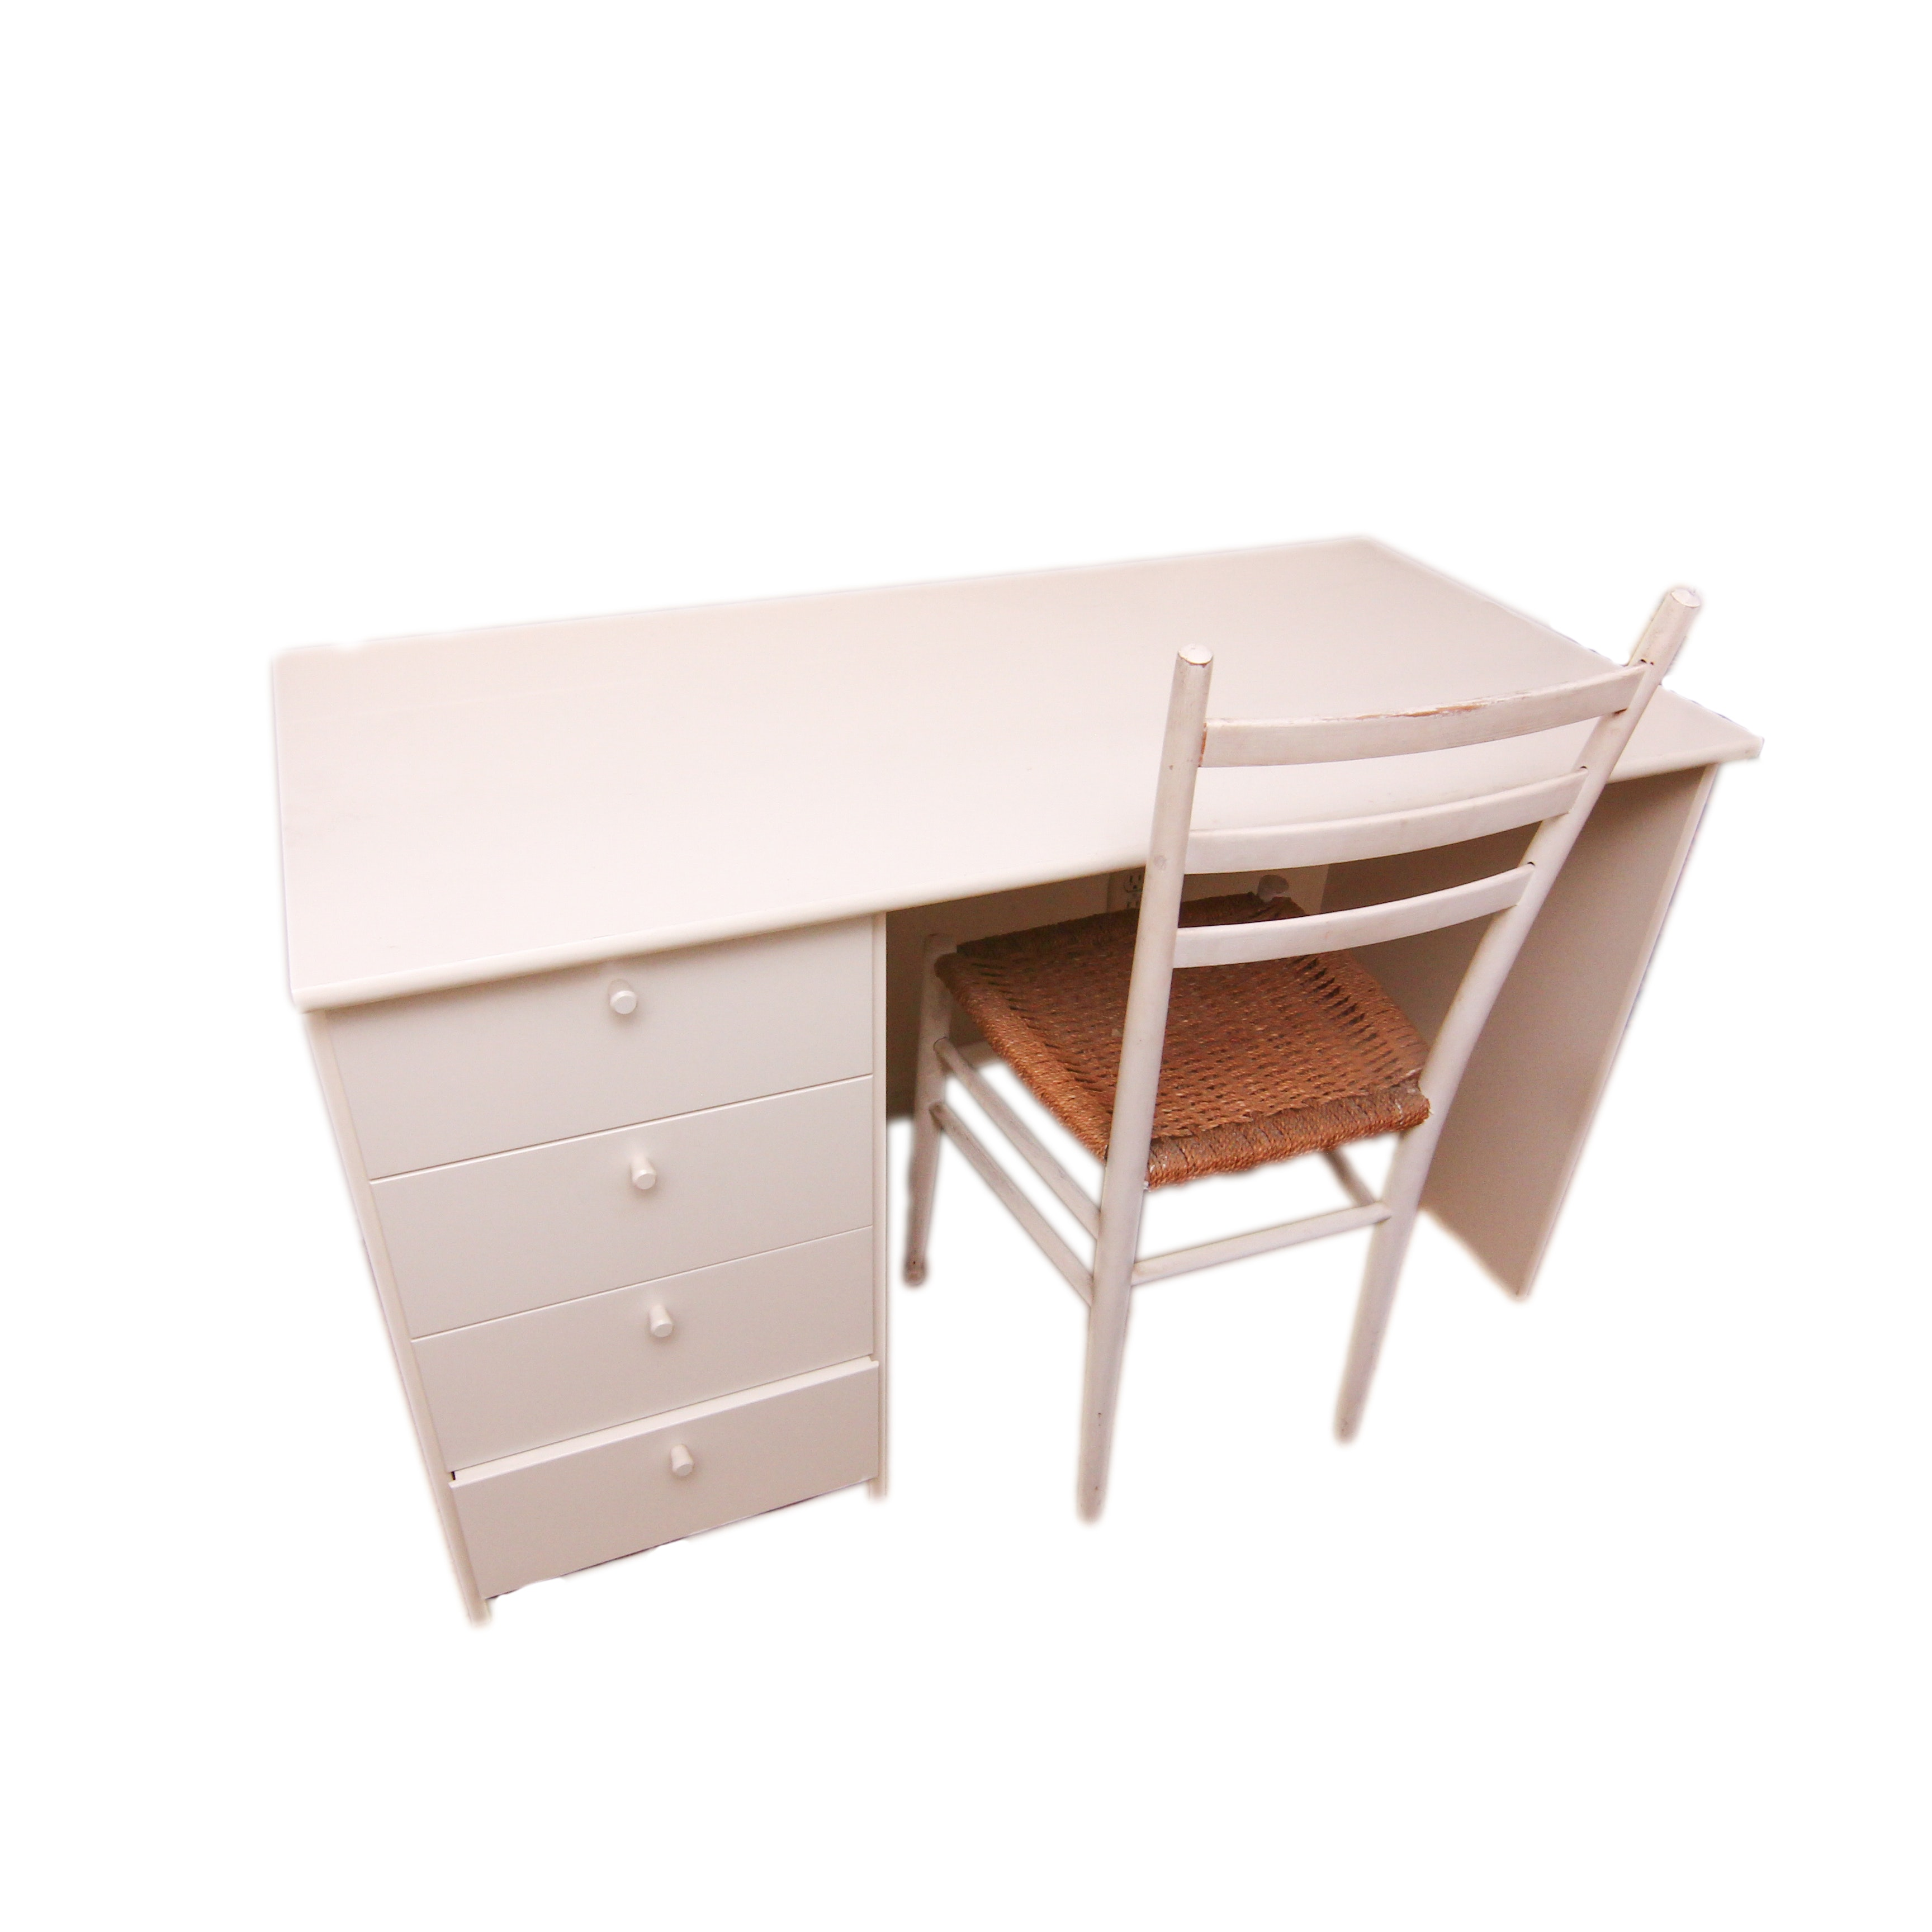 Laminate Desk and Ladderback Chair